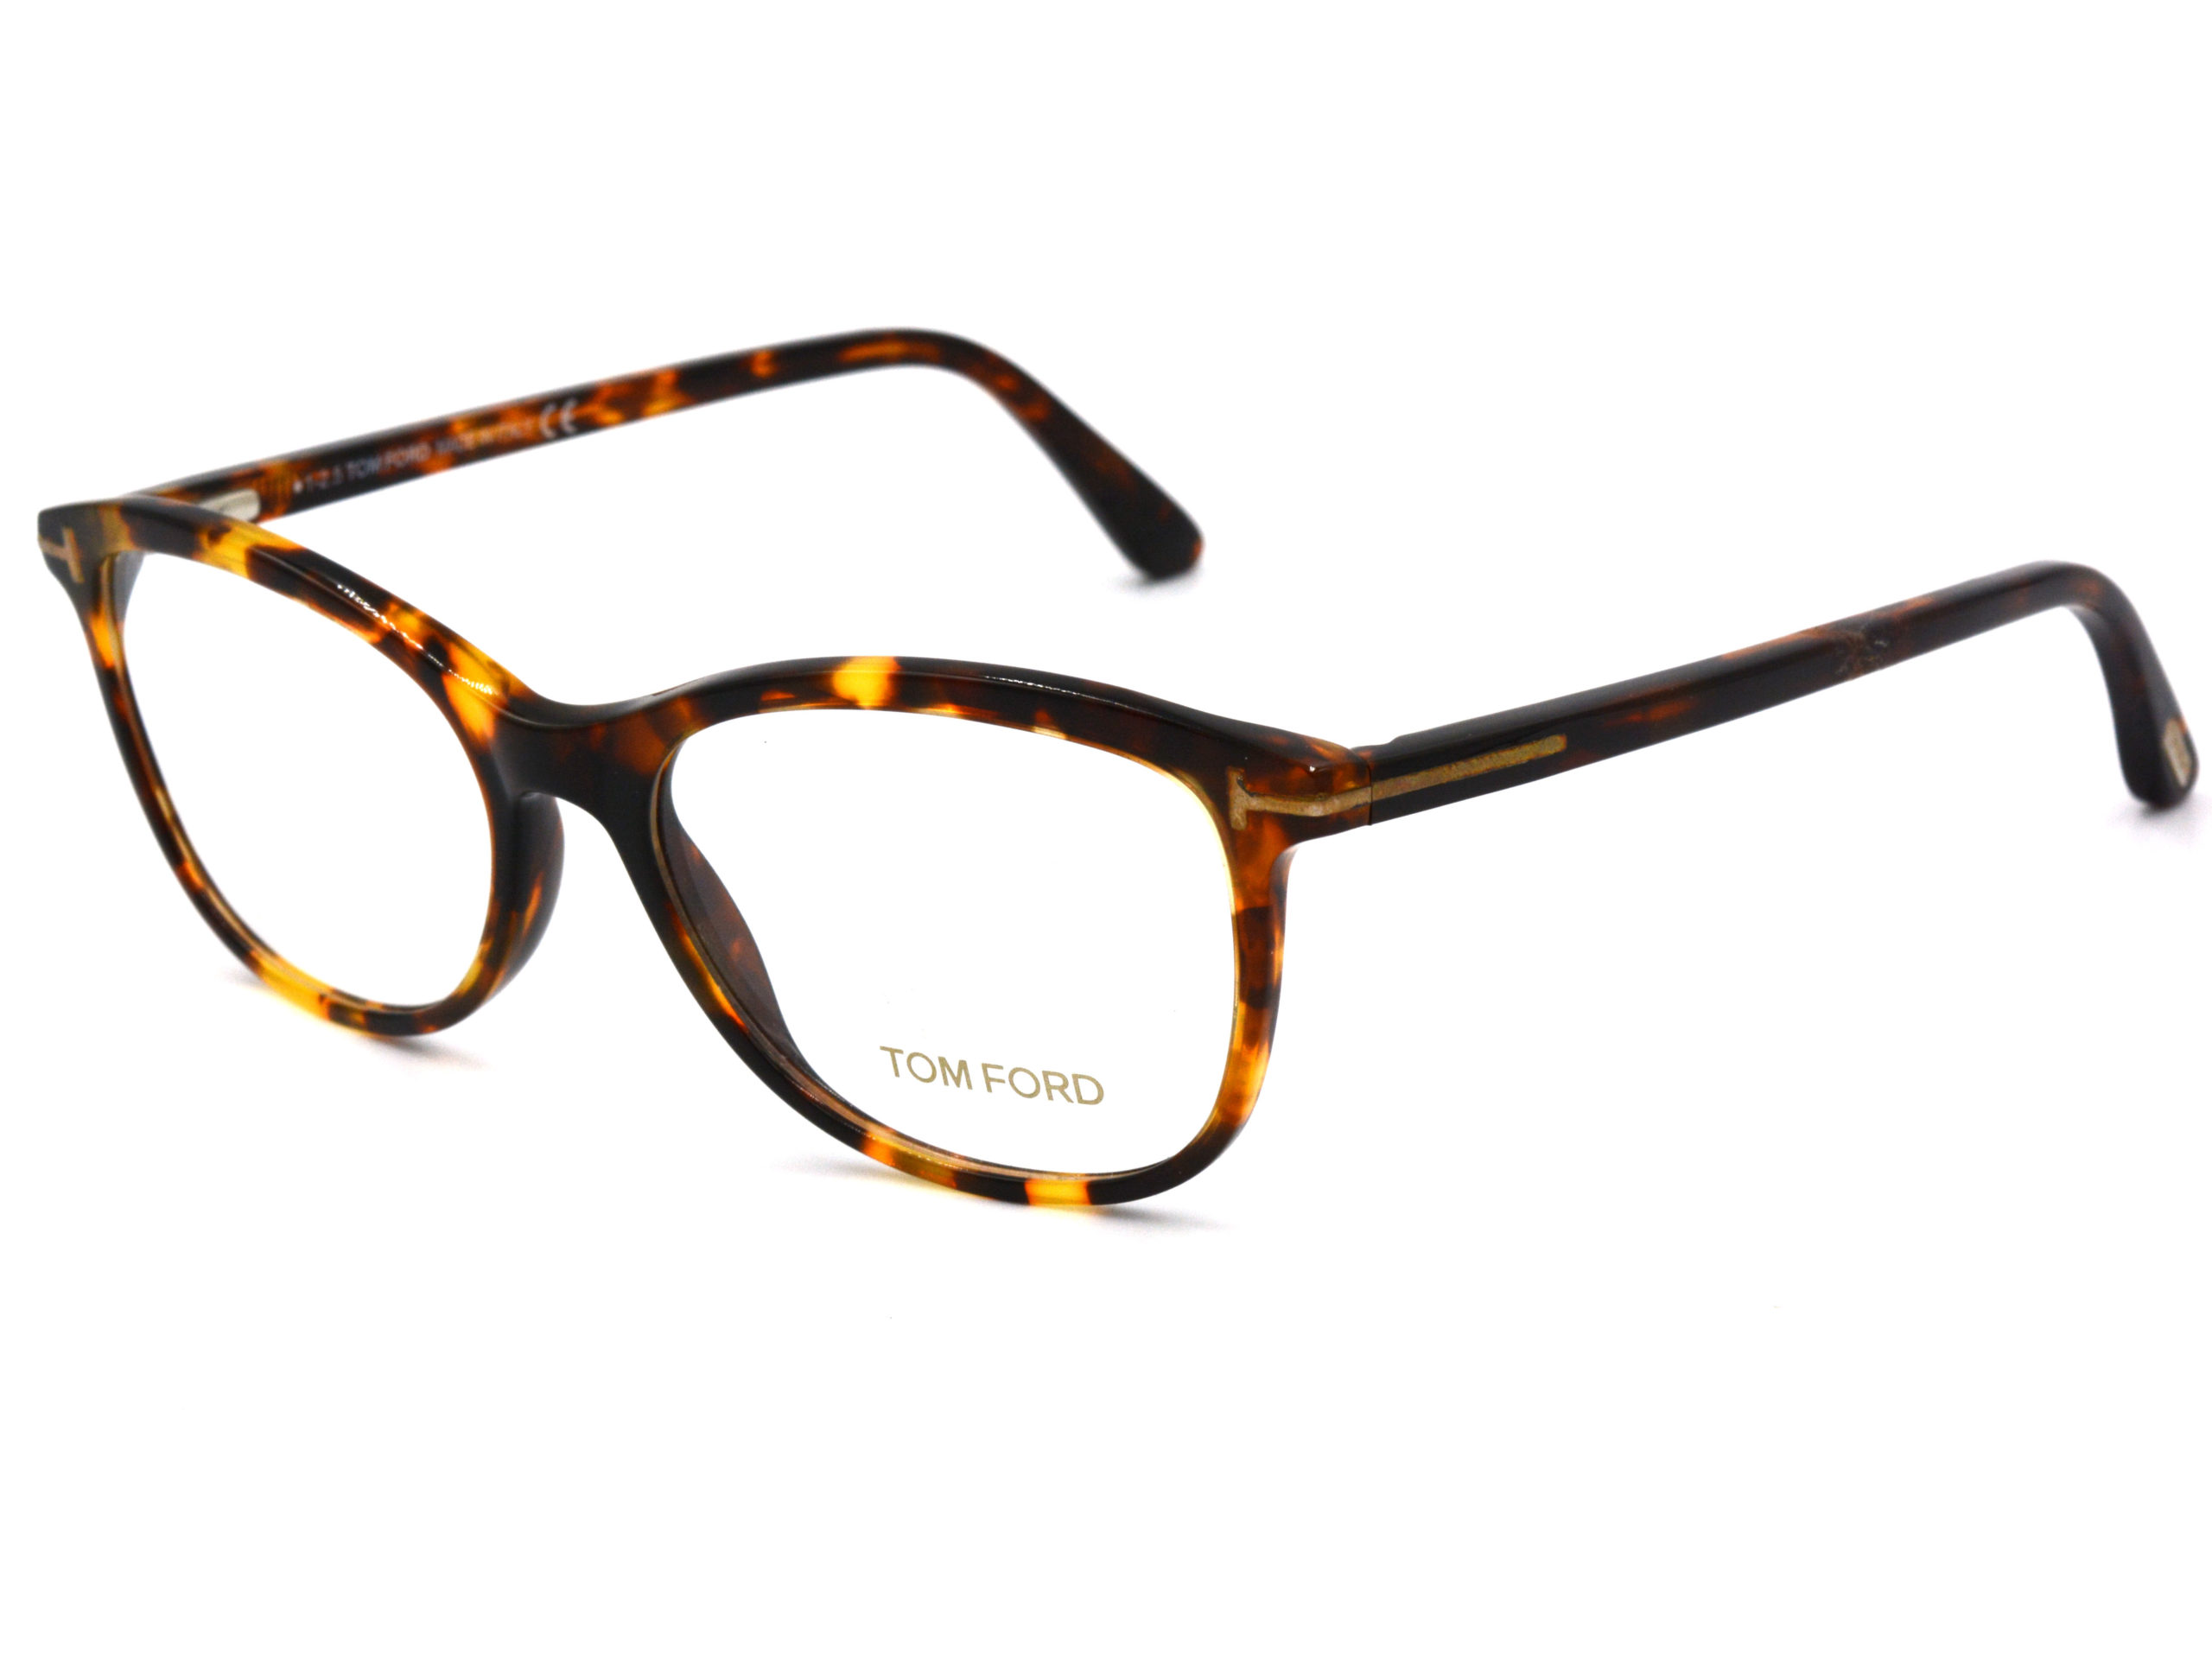 TOM FORD TF5388 052 Unisex Prescription Glasses 2020